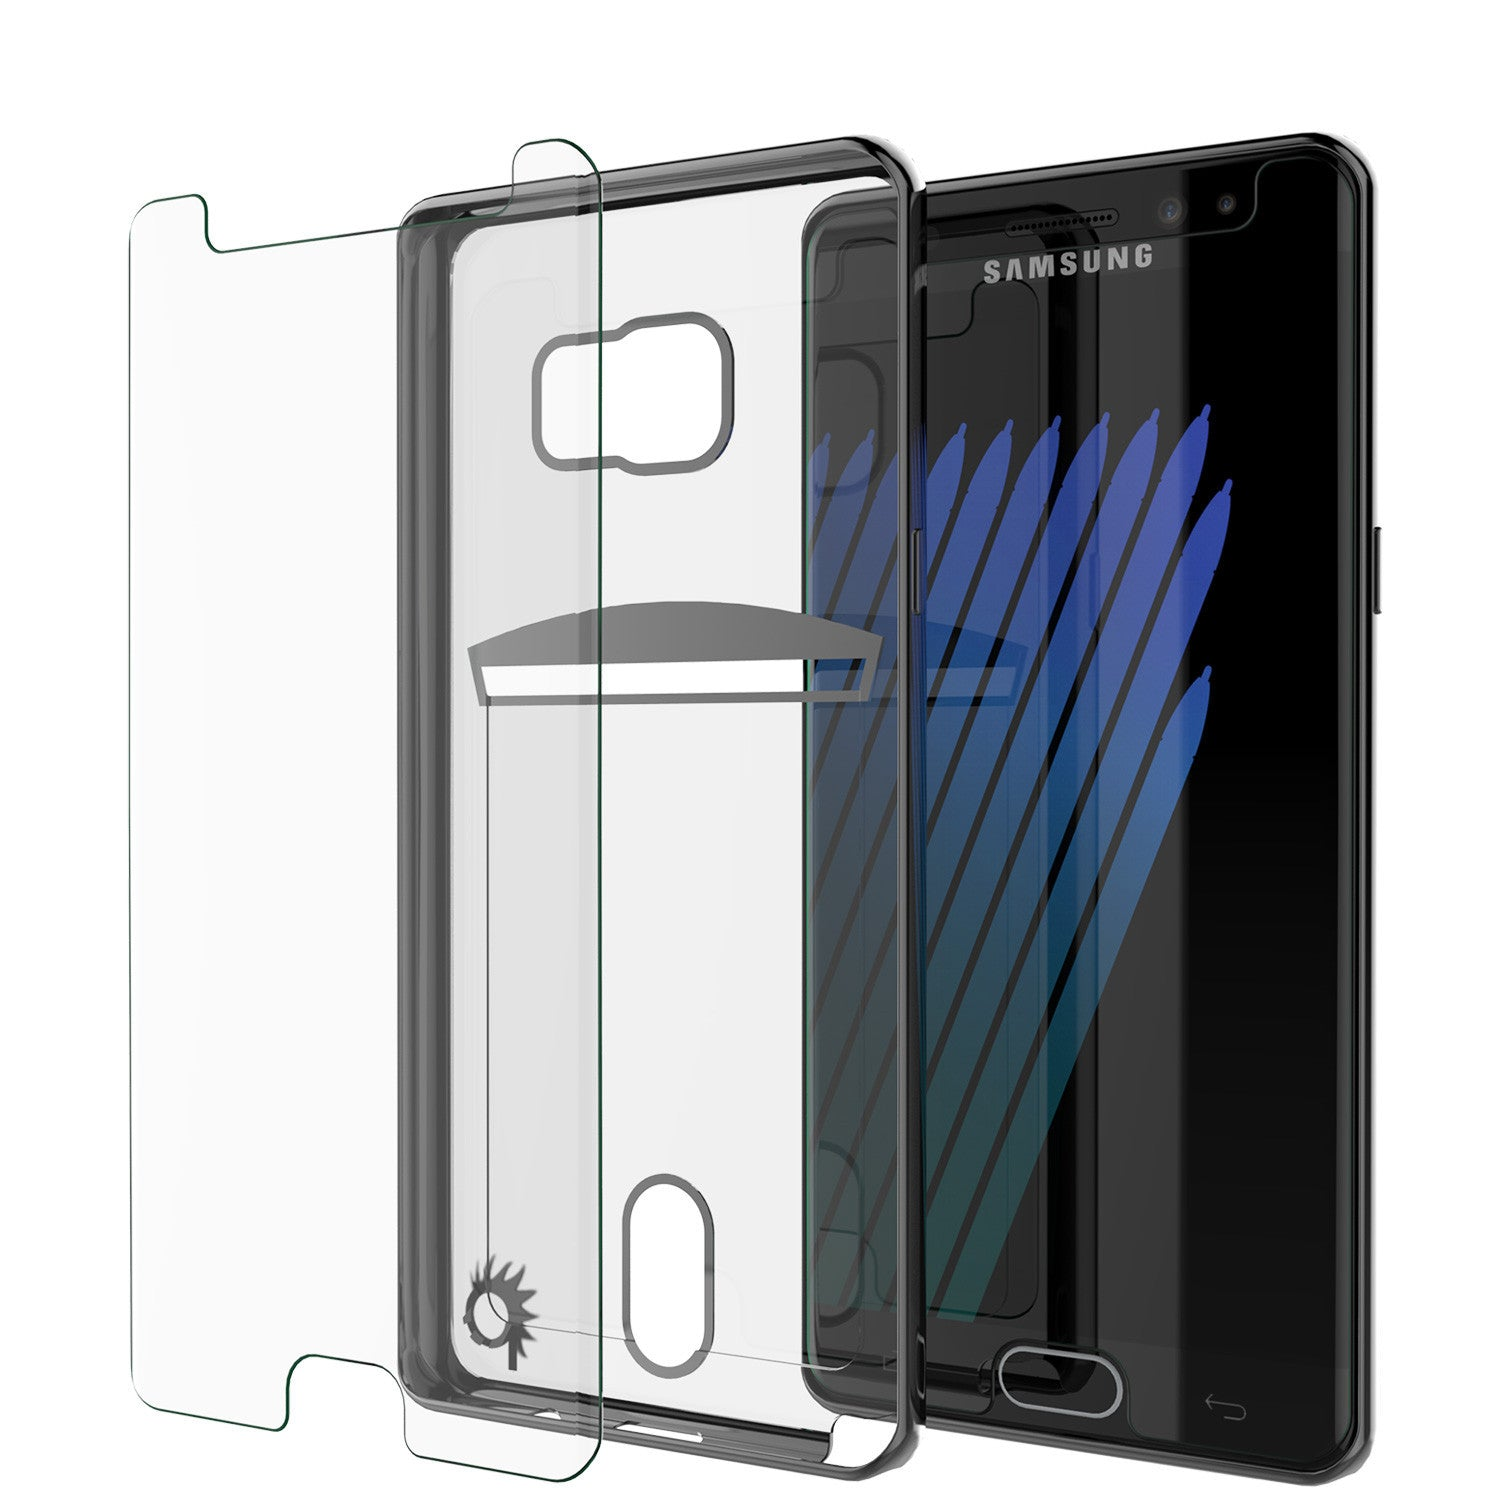 Galaxy Note 7 Case, PUNKCASE® LUCID Black Series | Card Slot | SHIELD Screen Protector | Ultra fit